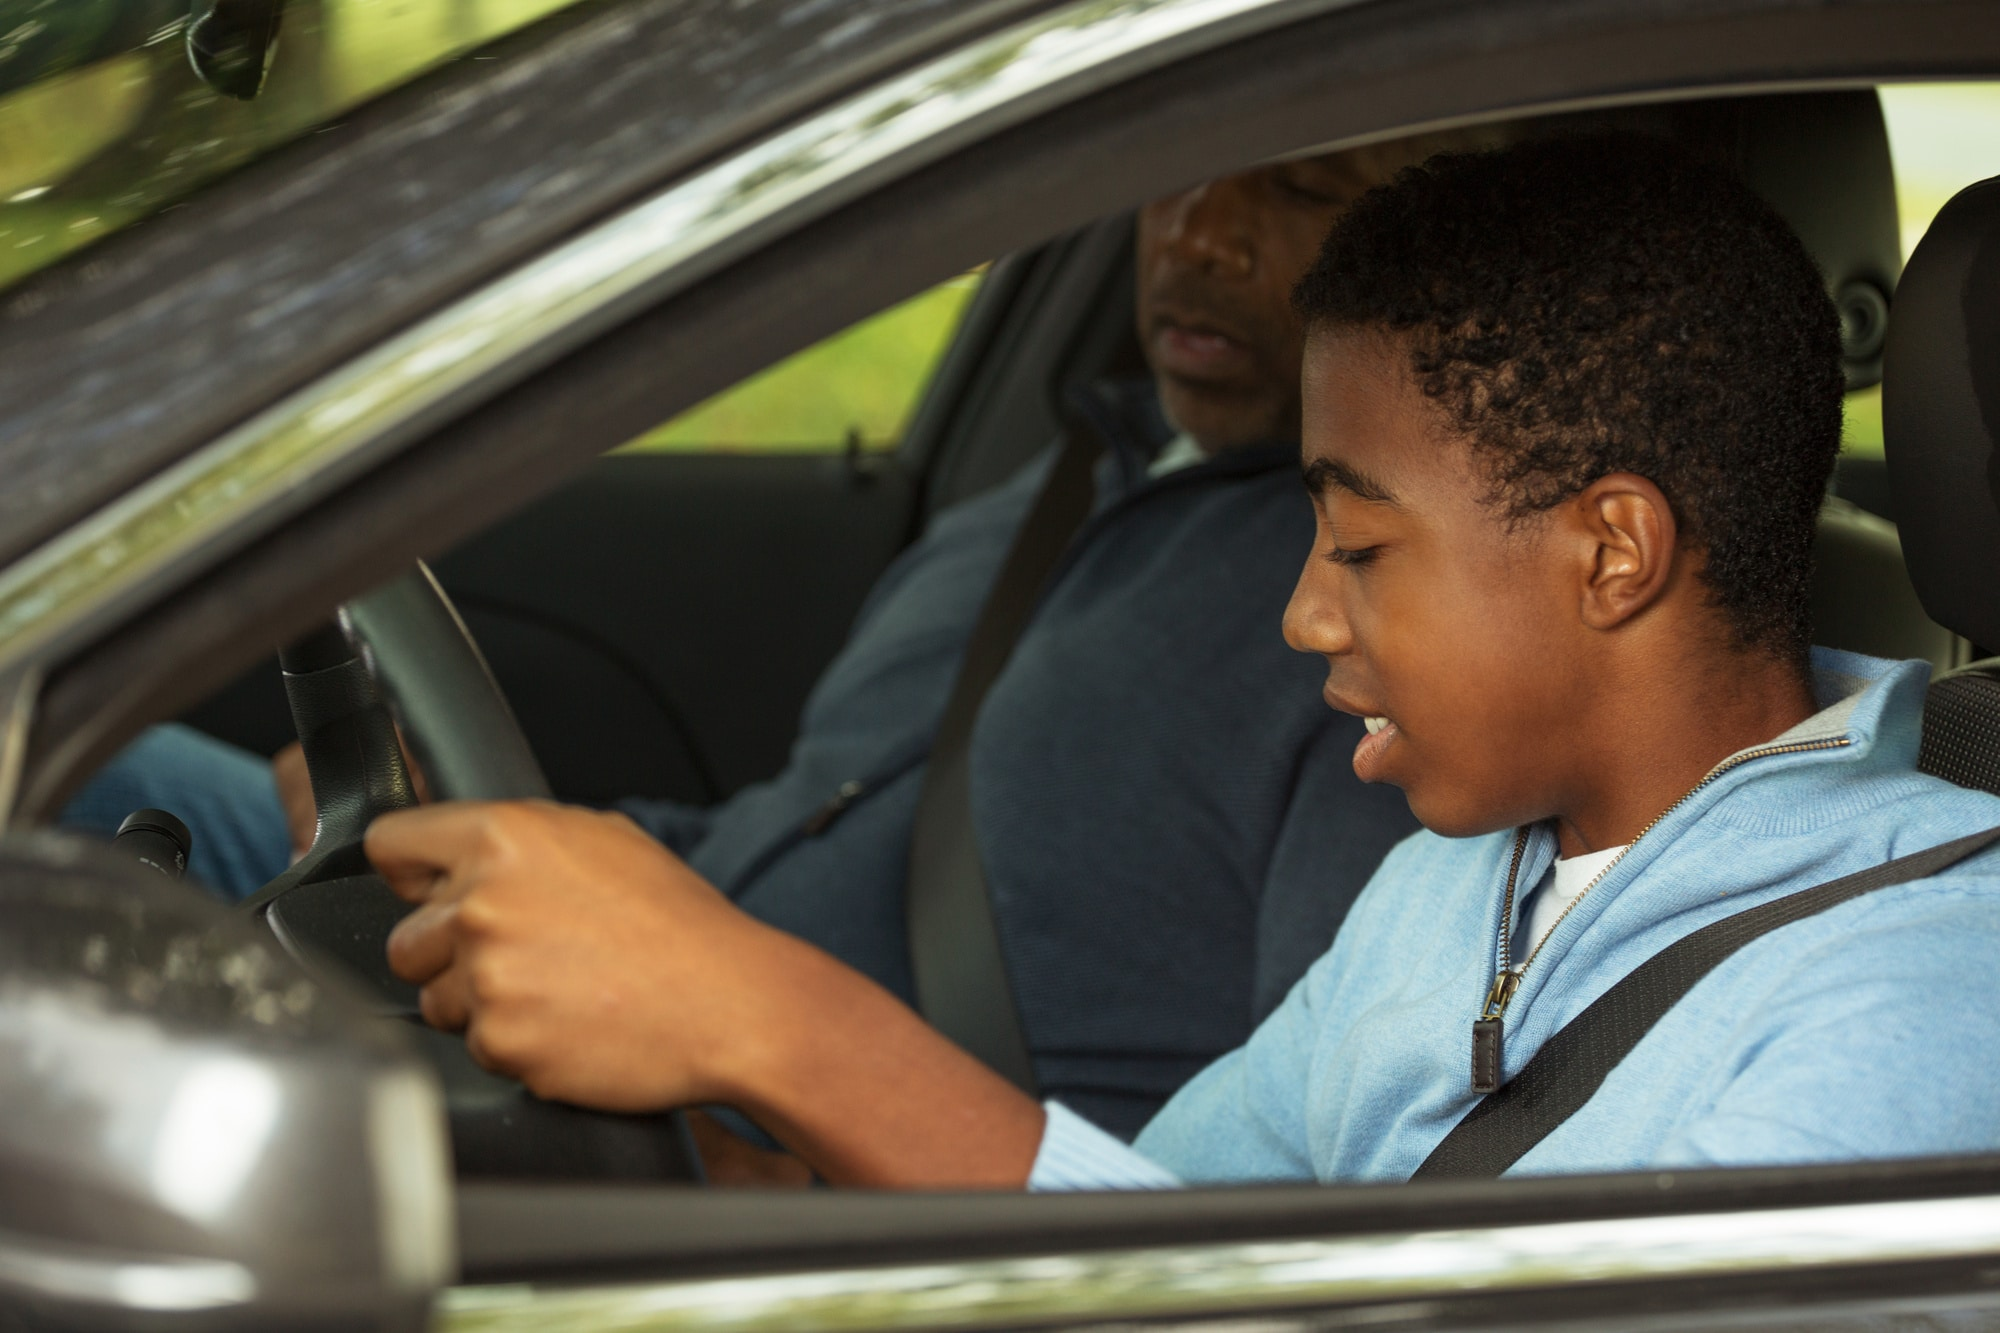 adding teenager to car insurance